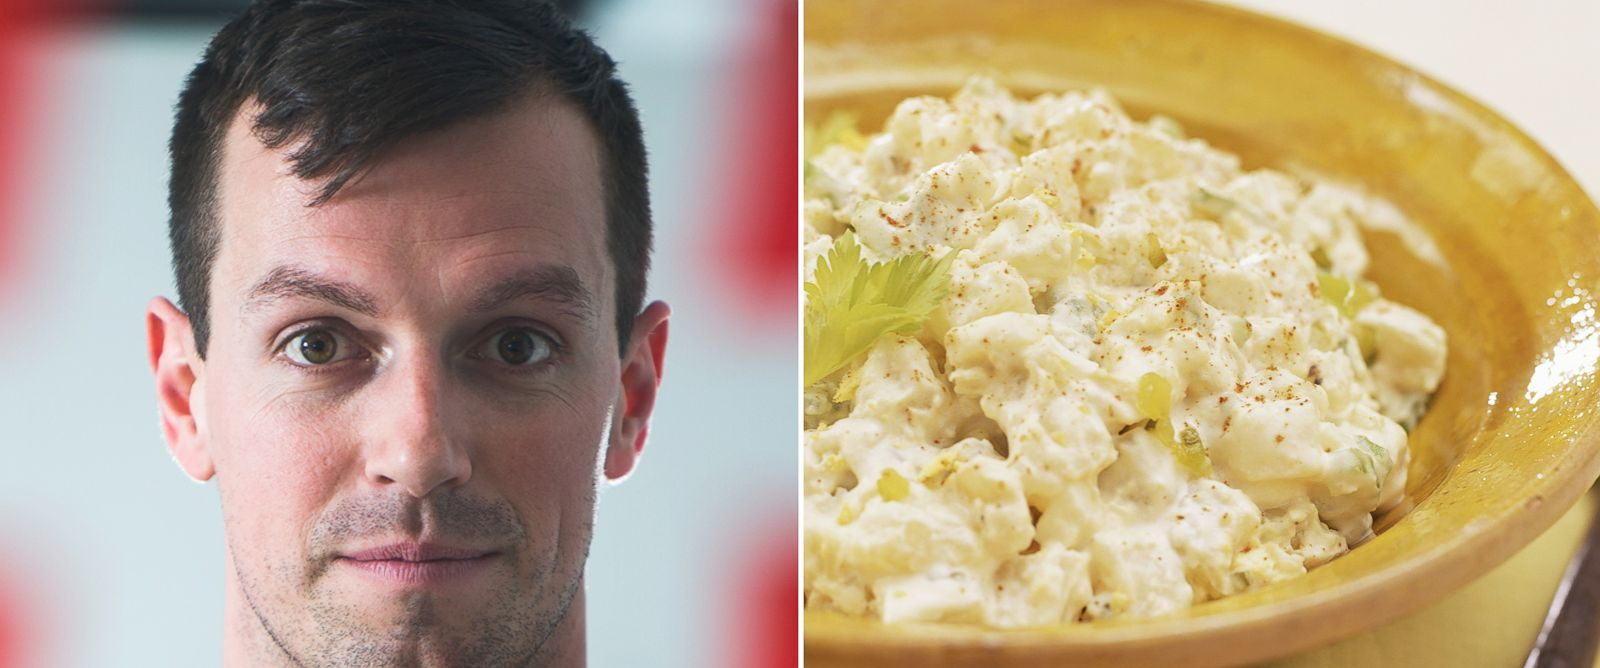 PHOTO: Zach Brown created a Kickstarter goal of $10 to make potato salad, and he has since raised over $10,000.